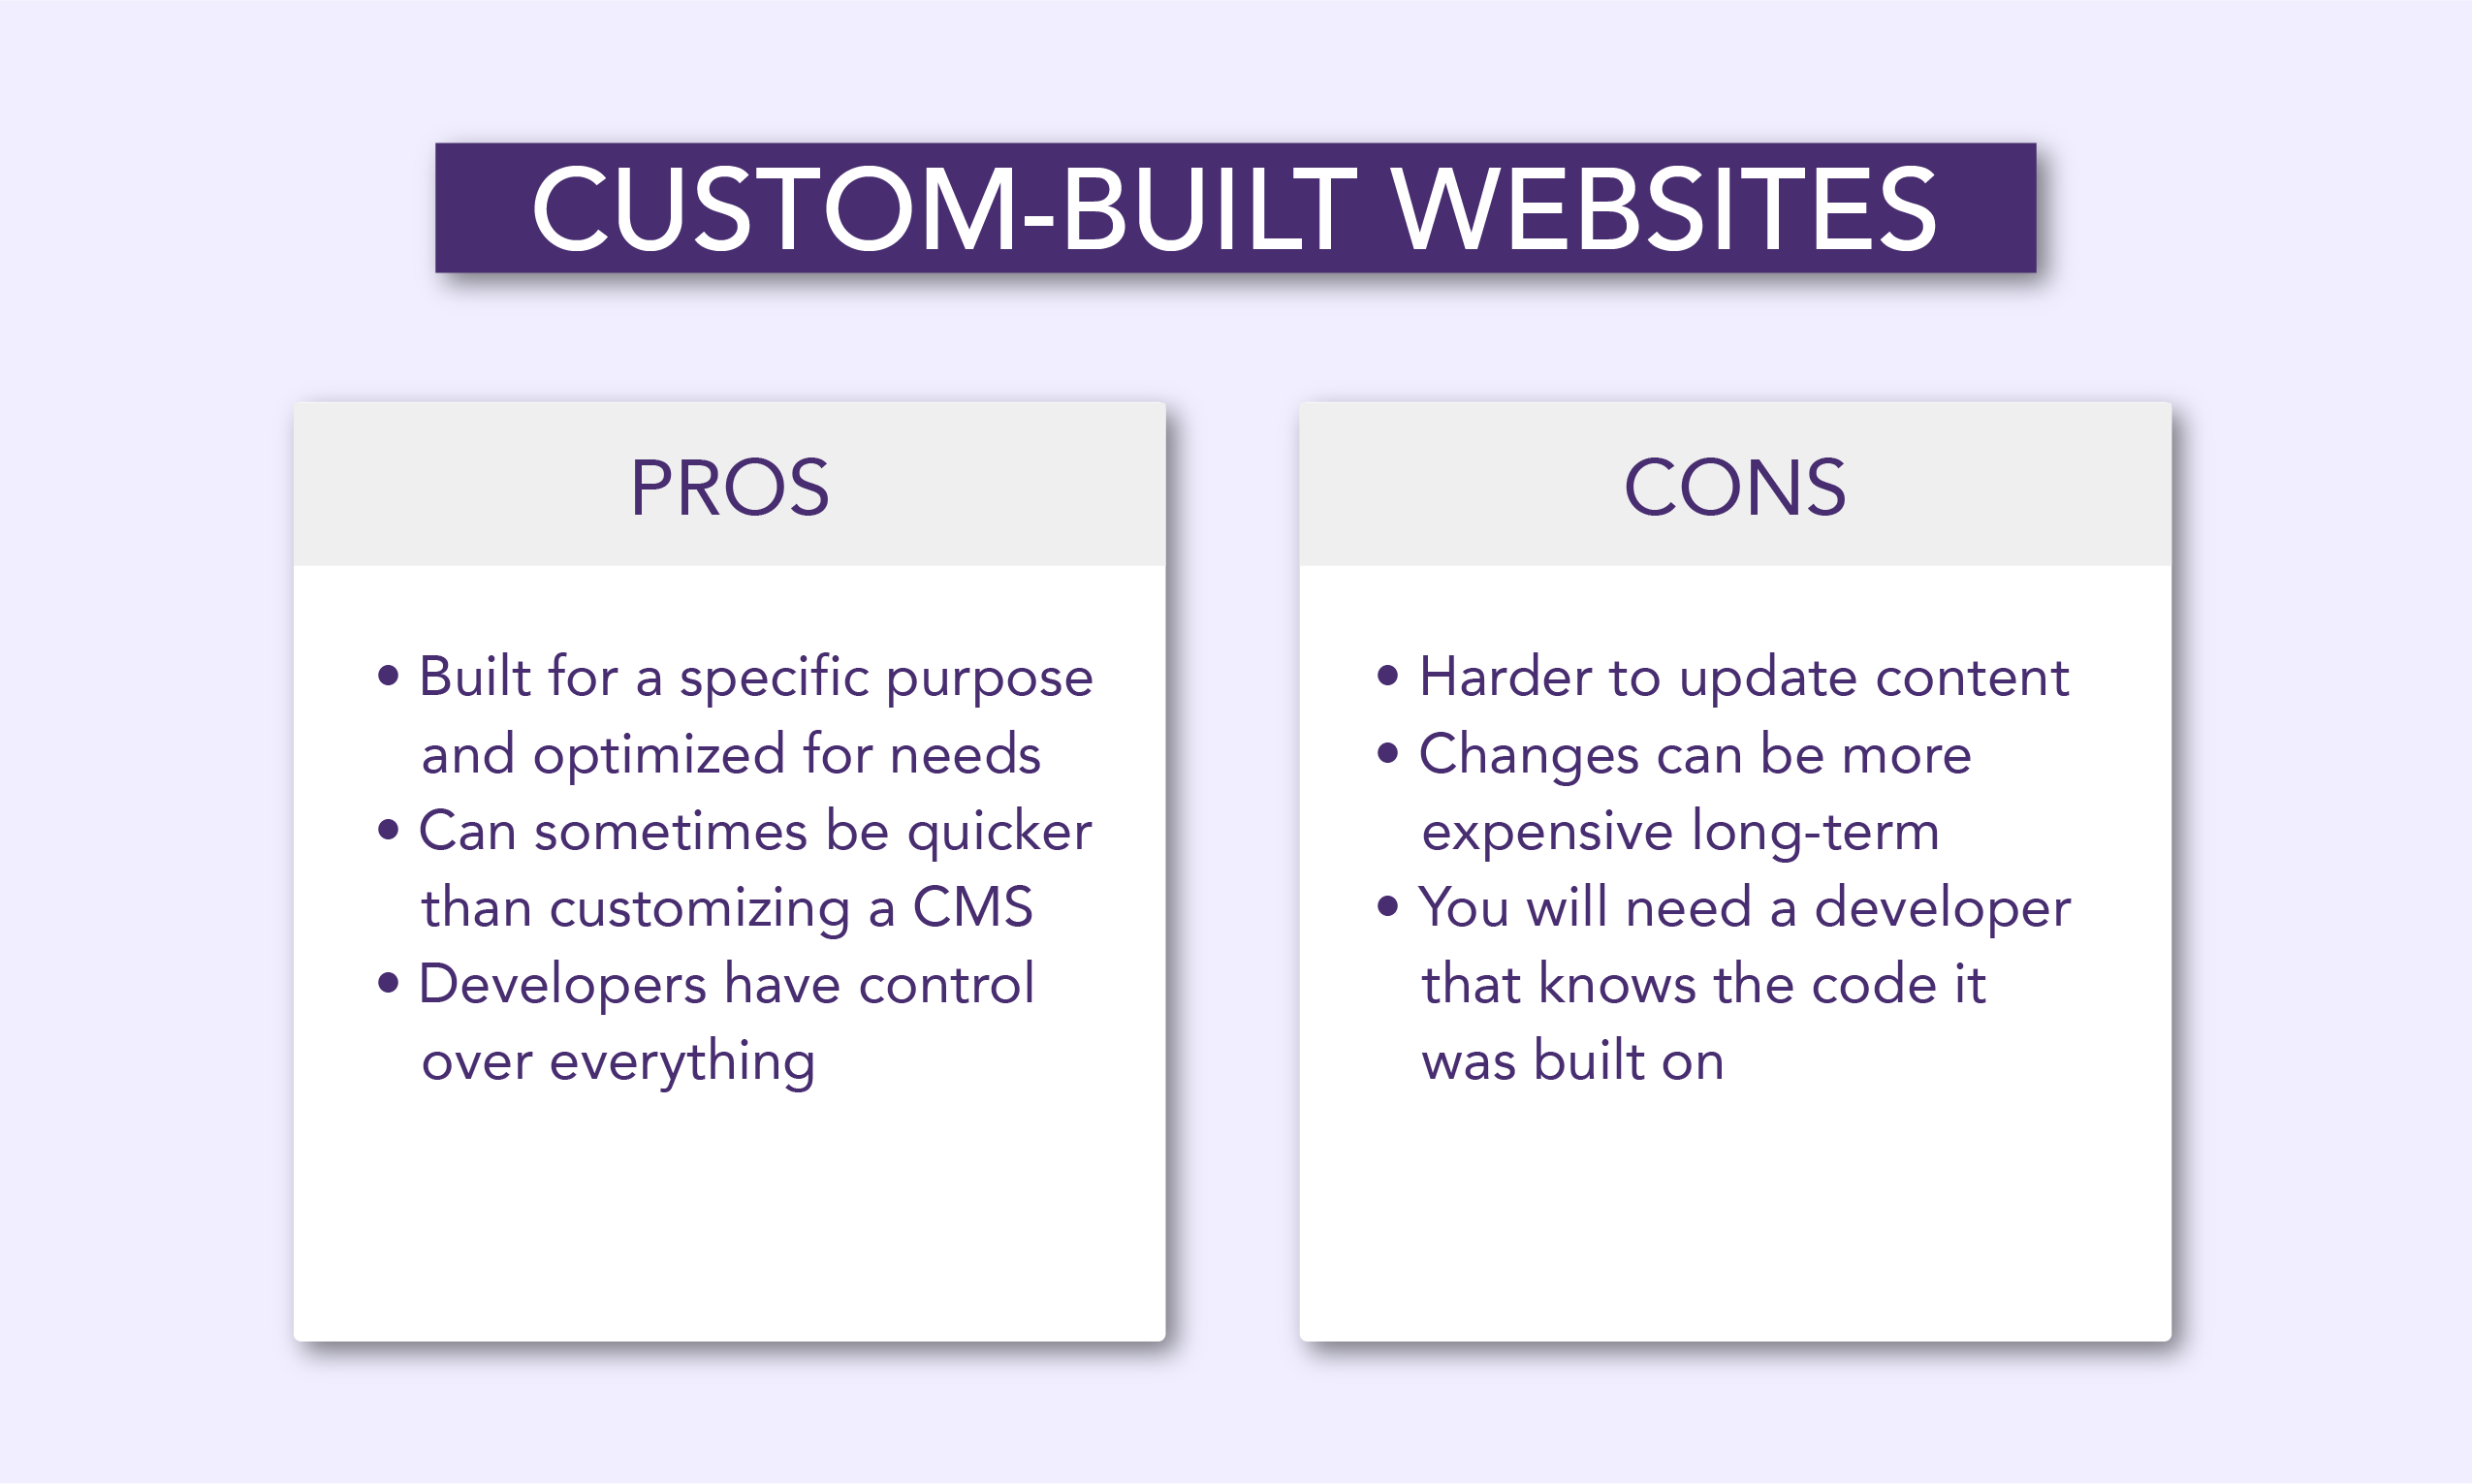 Custom-built websites are ideal for companies that need special functionality, complicated integrations, logins and authentication systems, and interaction with complex APIs.